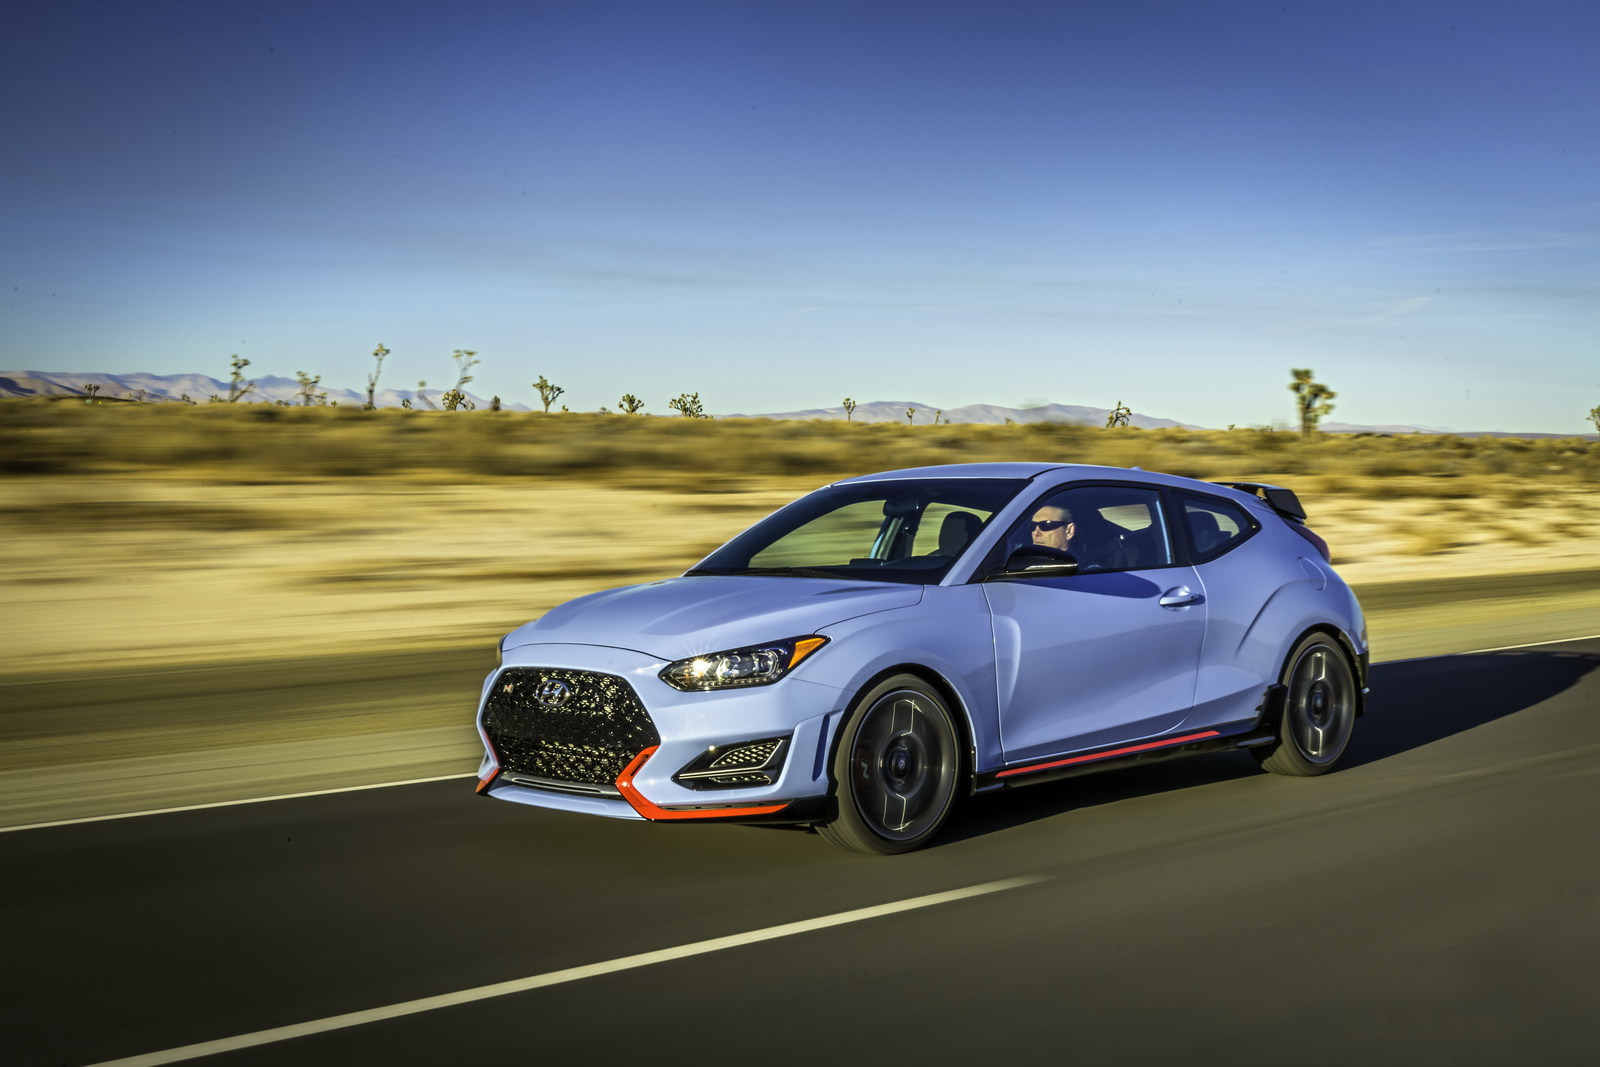 Focus St 19 Inch Wheels >> Hot Hyundai Veloster N With 275HP Shifts Its Focus On Ford's ST | Carscoops